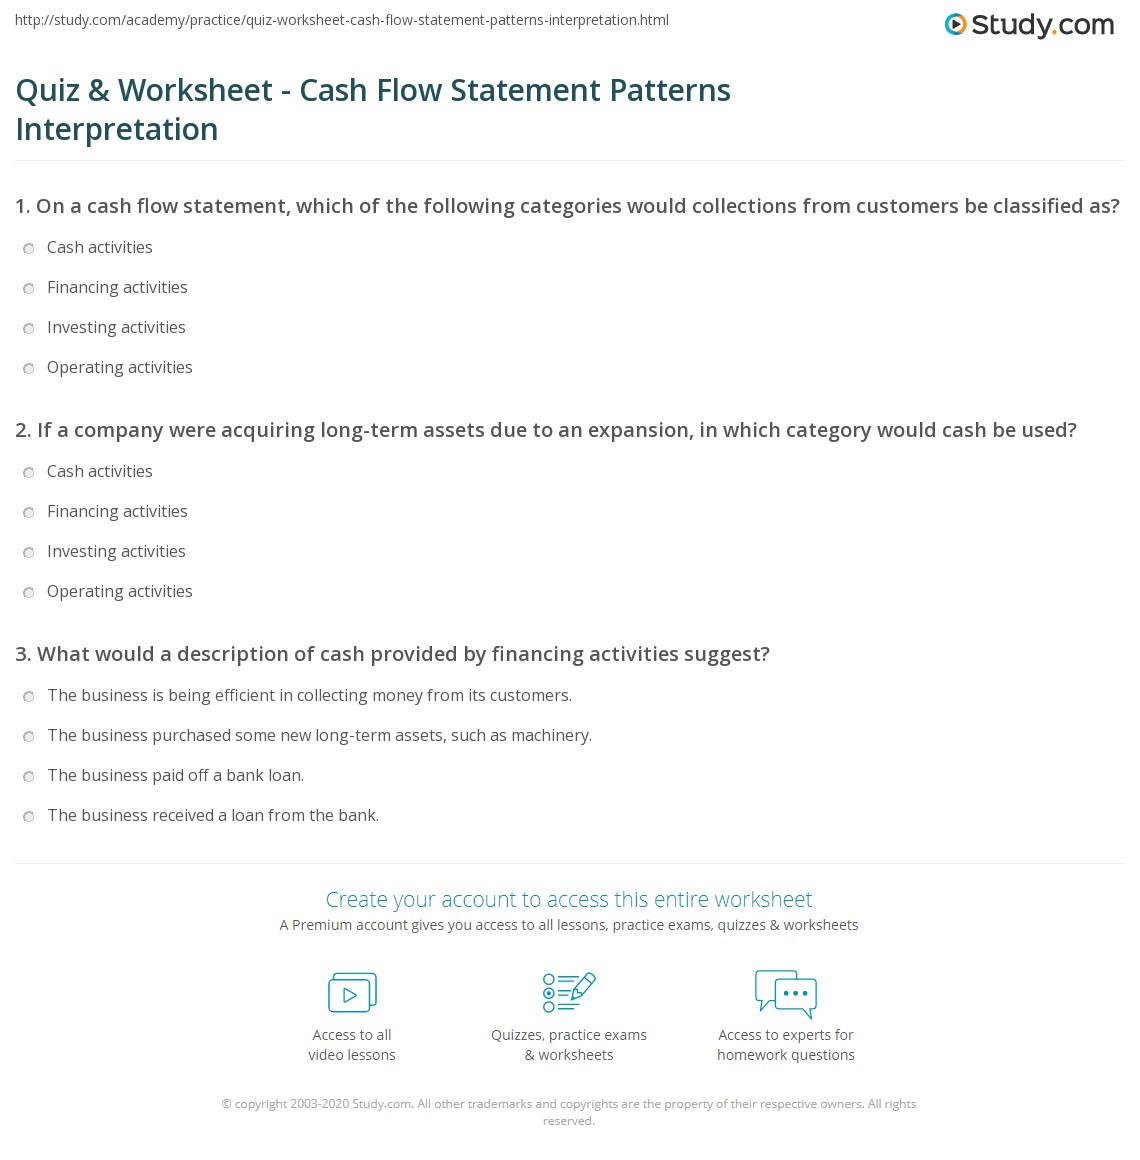 Worksheets Cash Flow Statement Worksheet quiz worksheet cash flow statement patterns interpretation print analyzing worksheet